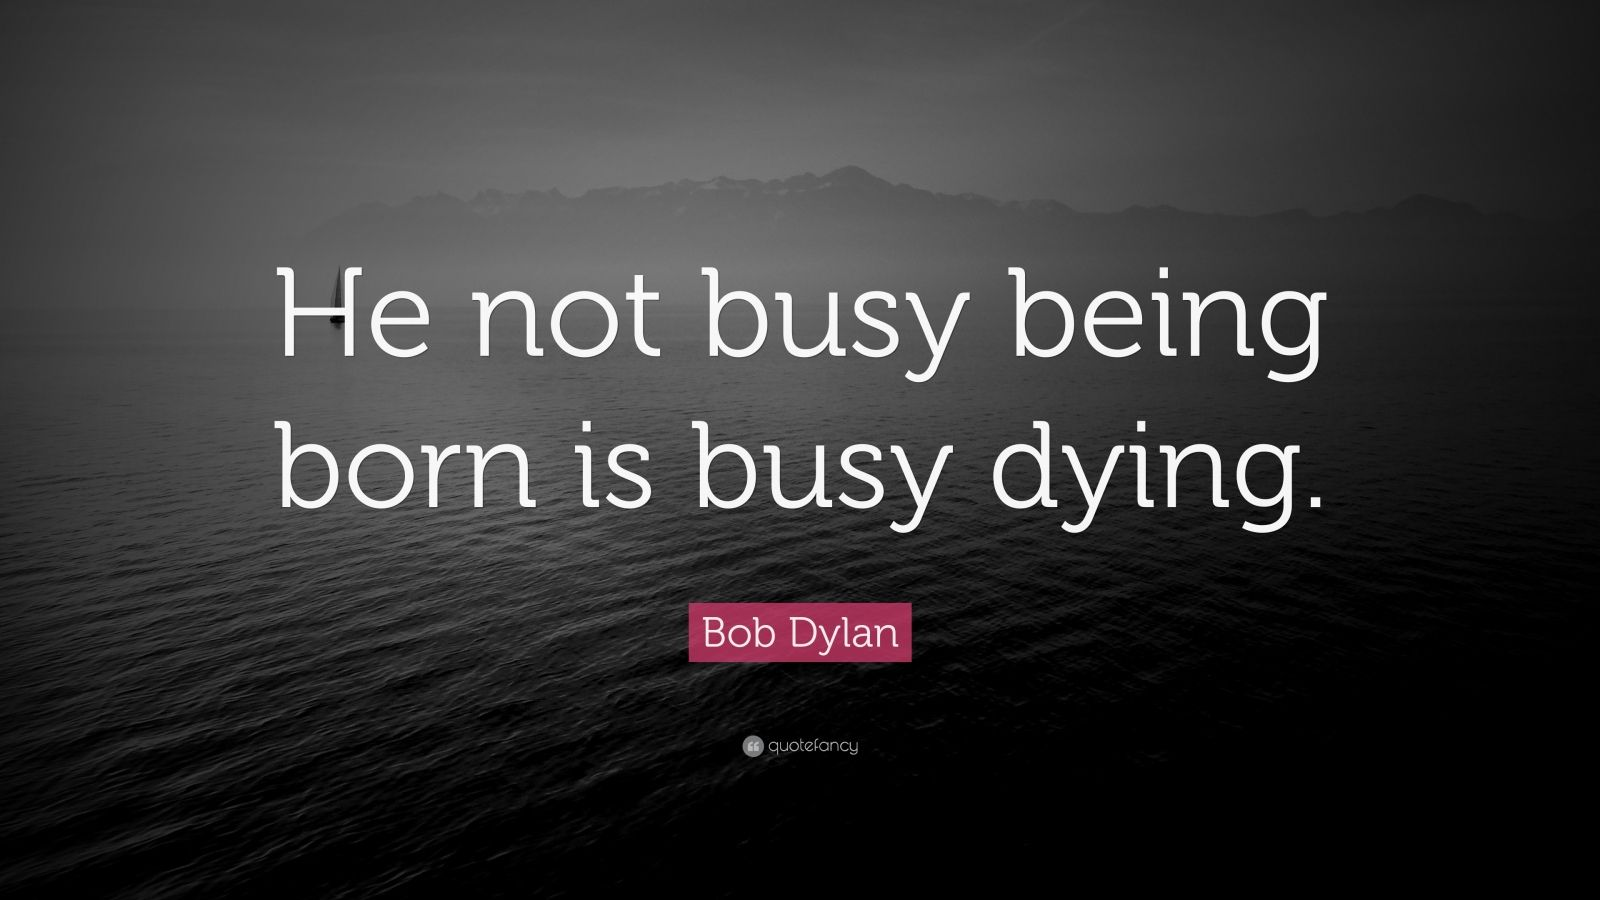 an analysis of contemporary music in he who is not busy being born is busy dying by bob dylan It's alright, ma (i'm only bleeding) words and music bob dylan the hollow horn plays wasted words proves to warn that he not busy being born is busy dying.